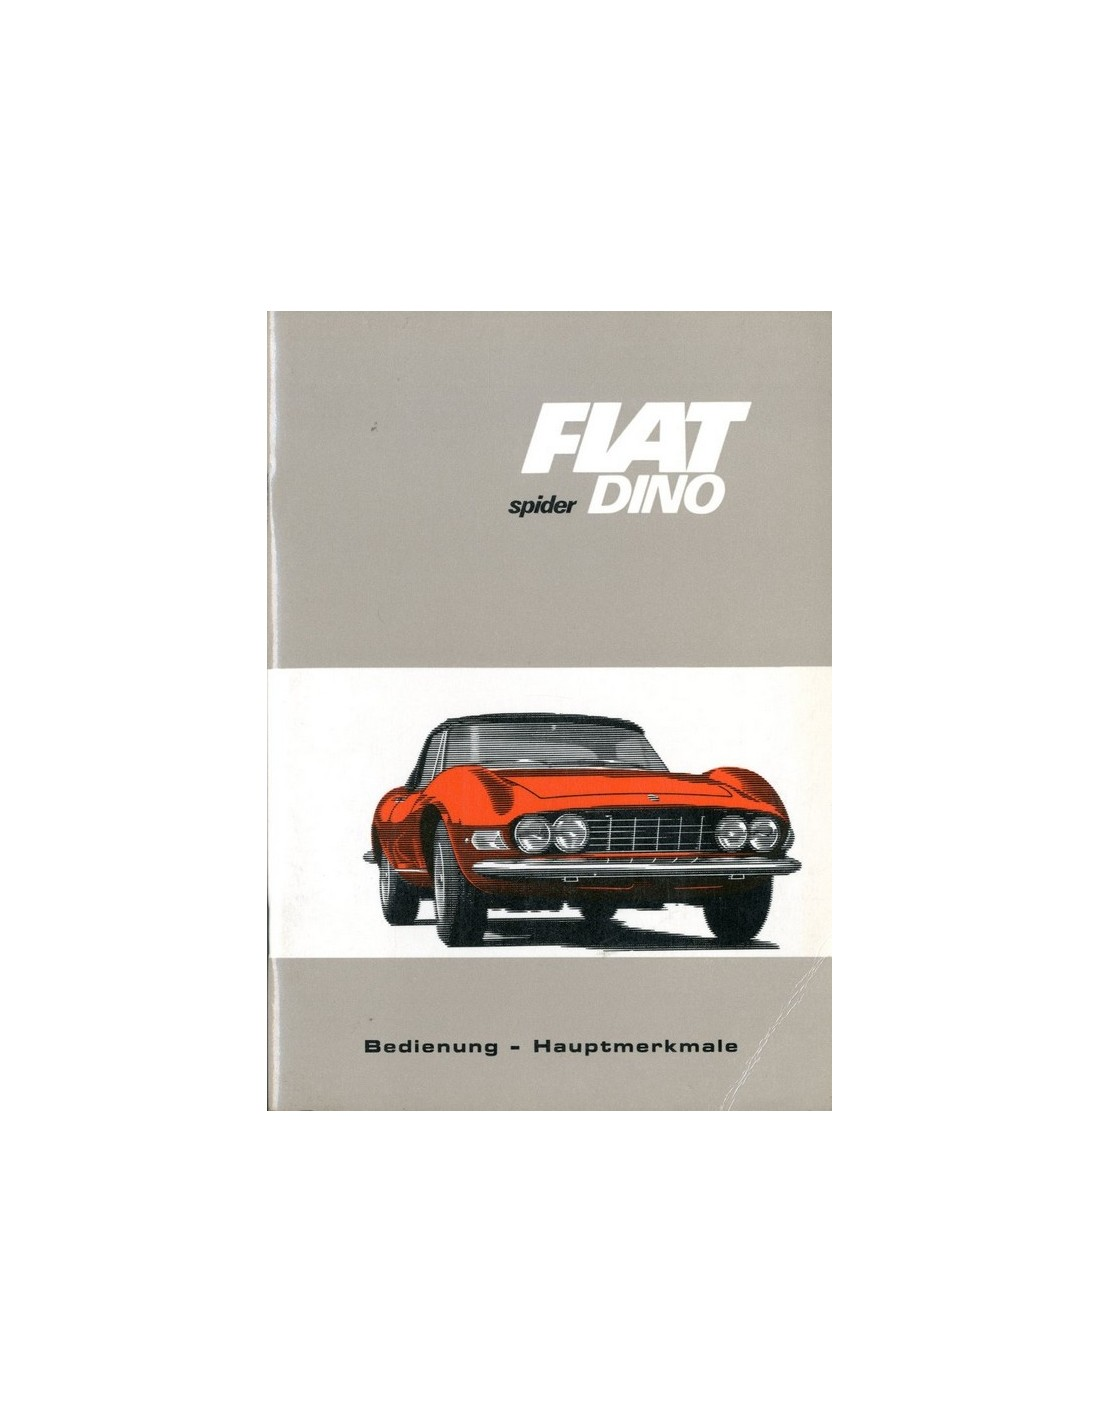 1967 fiat dino spider owners manual german fiat 124 spider owners manual fiat 124 spider repair manual